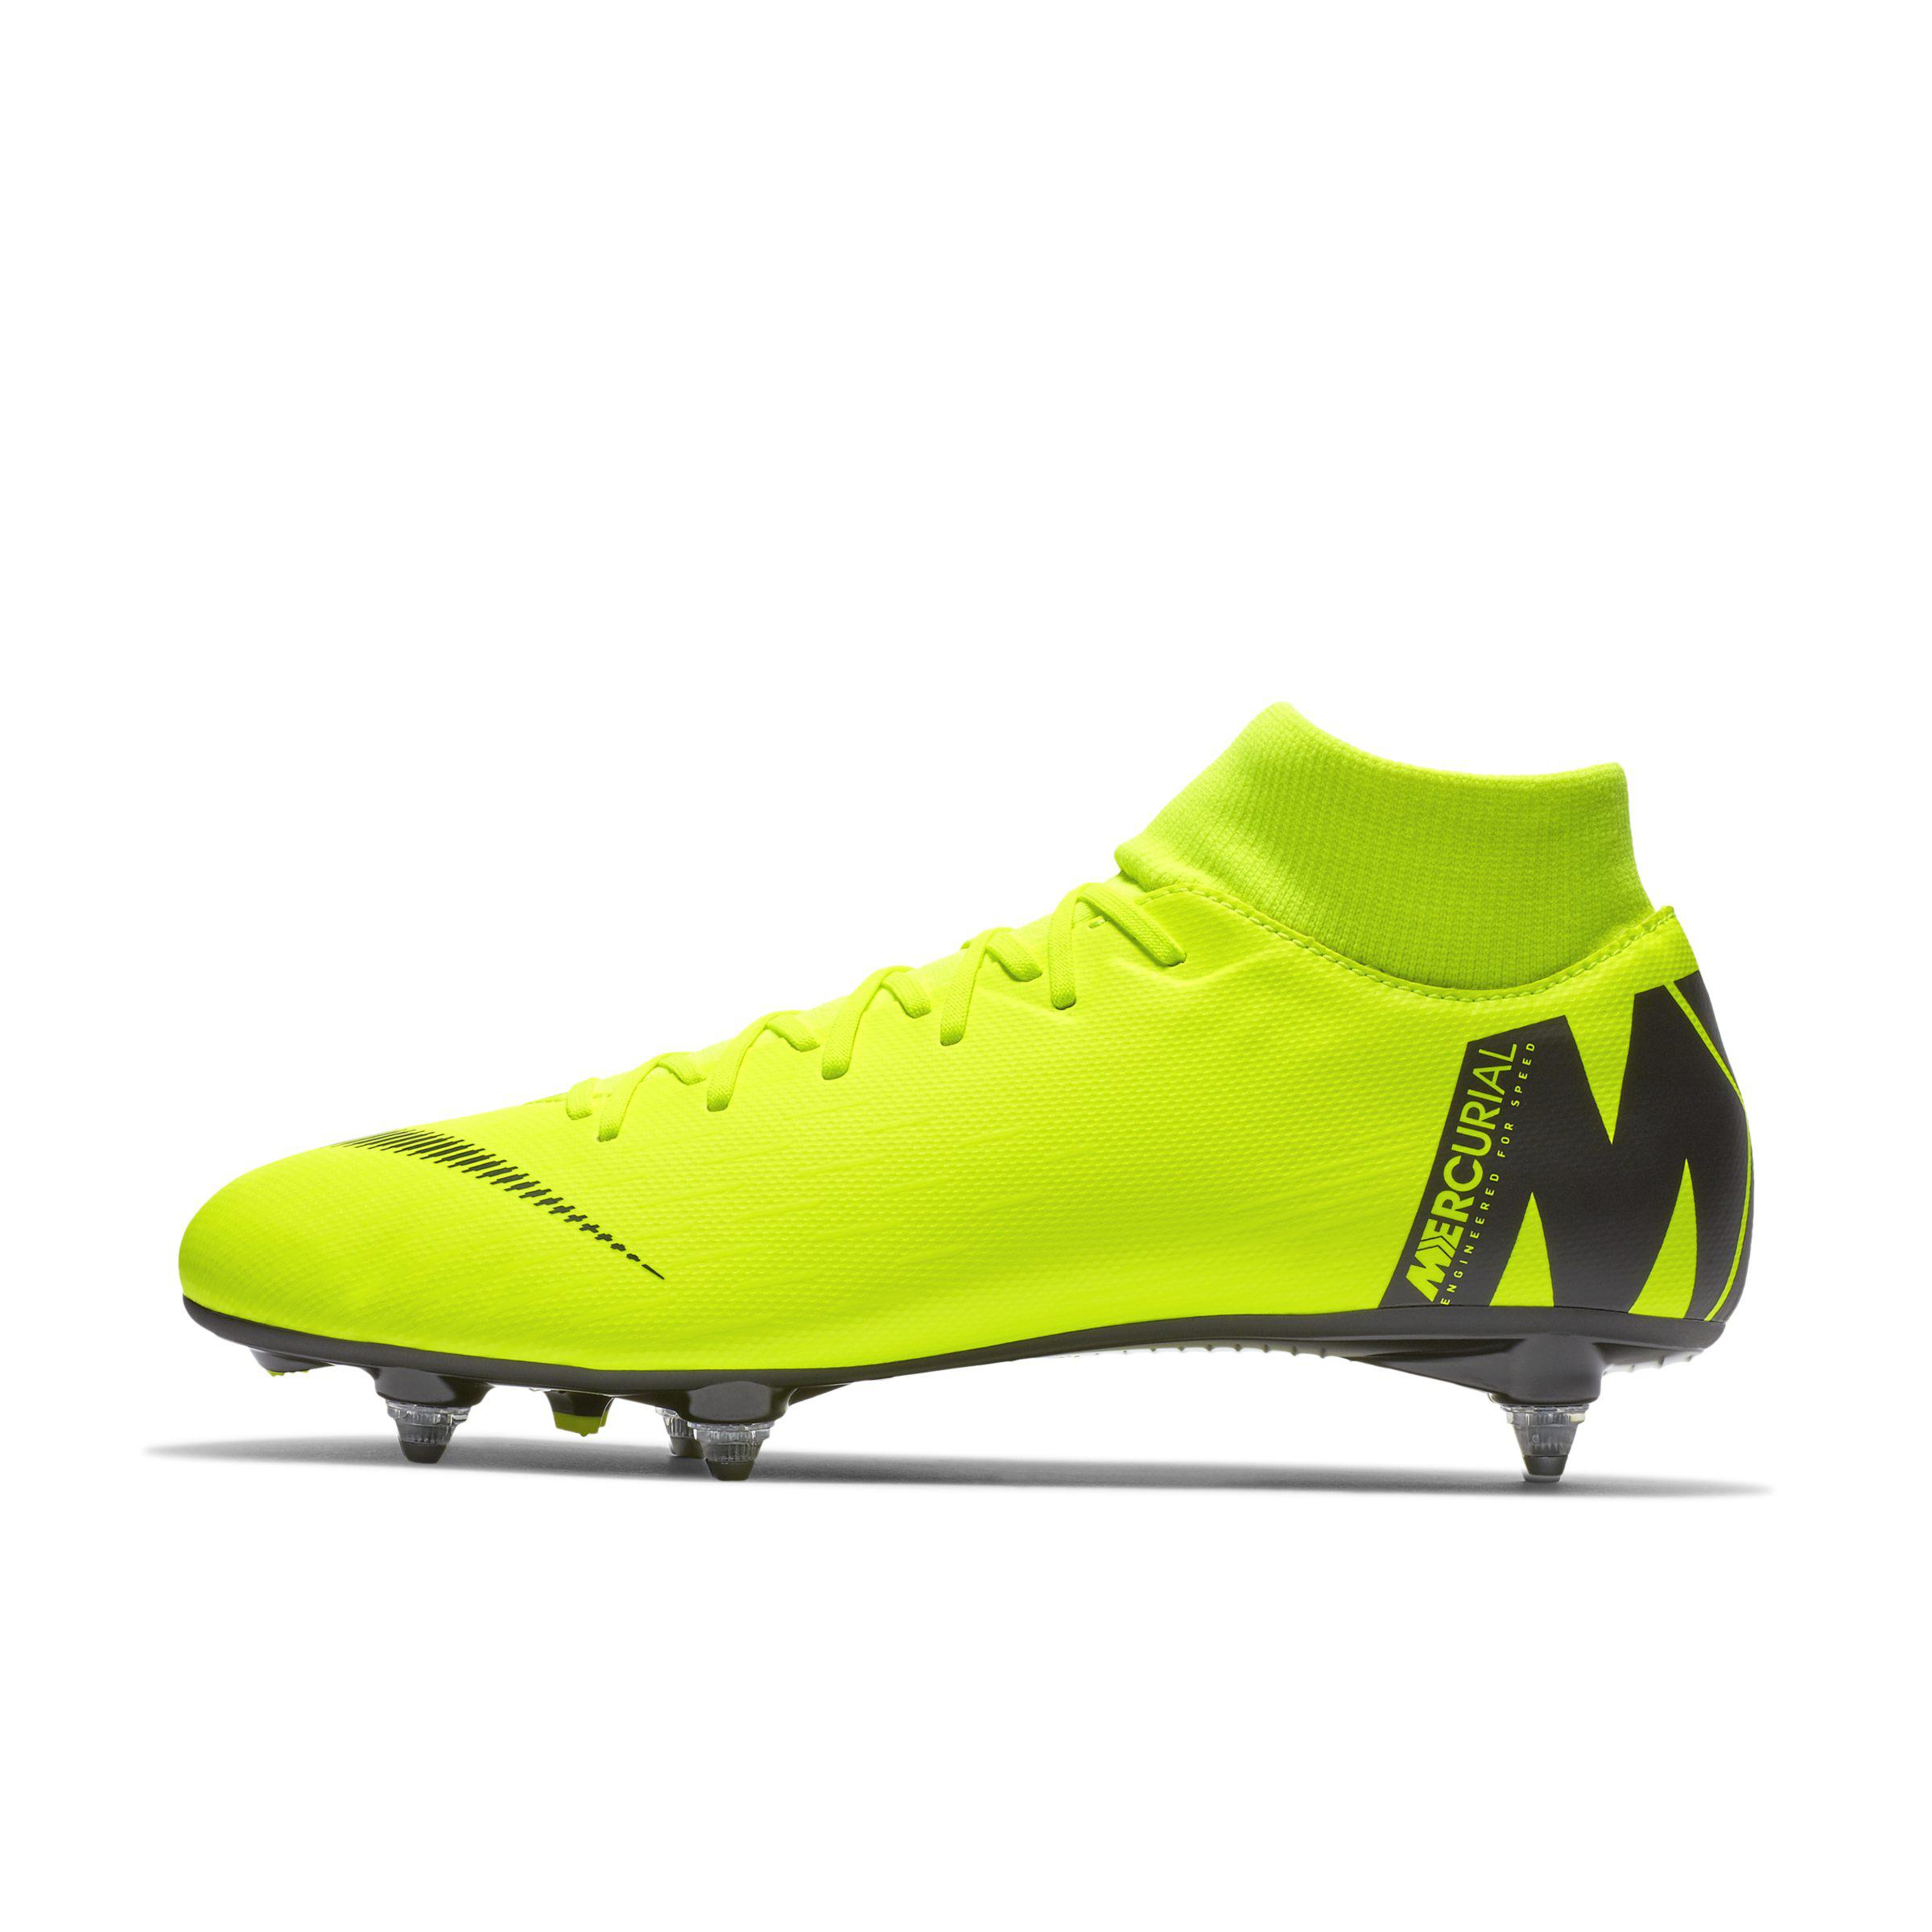 new arrival 70d42 c5ccb Nike Mercurial Superfly Vi Academy Sg-pro Soft-ground Football Boot ...